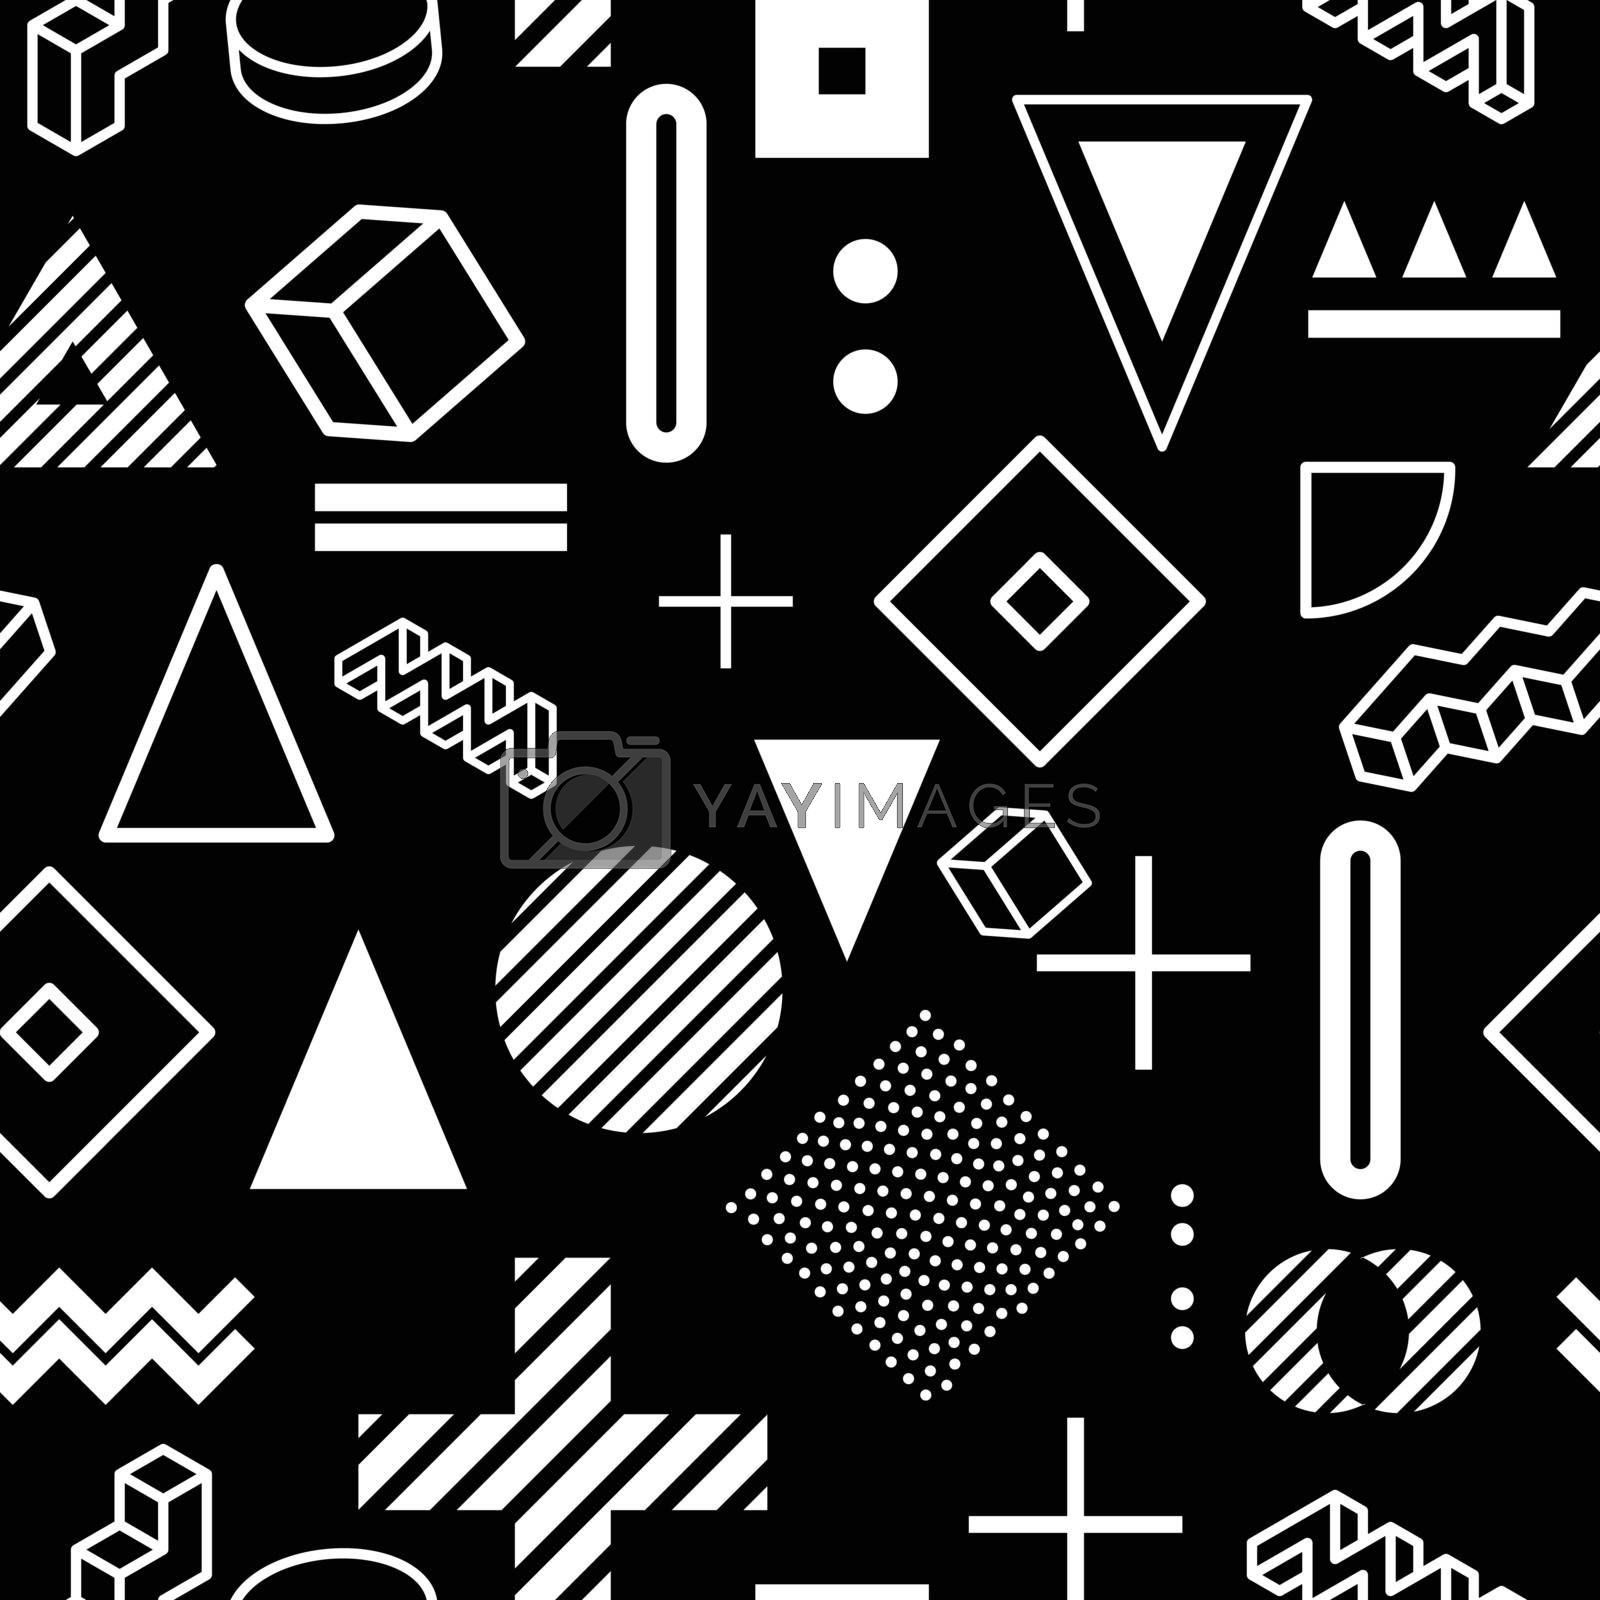 Geometric black and white pattern for fashion and wallpaper. Memphis style for fashion